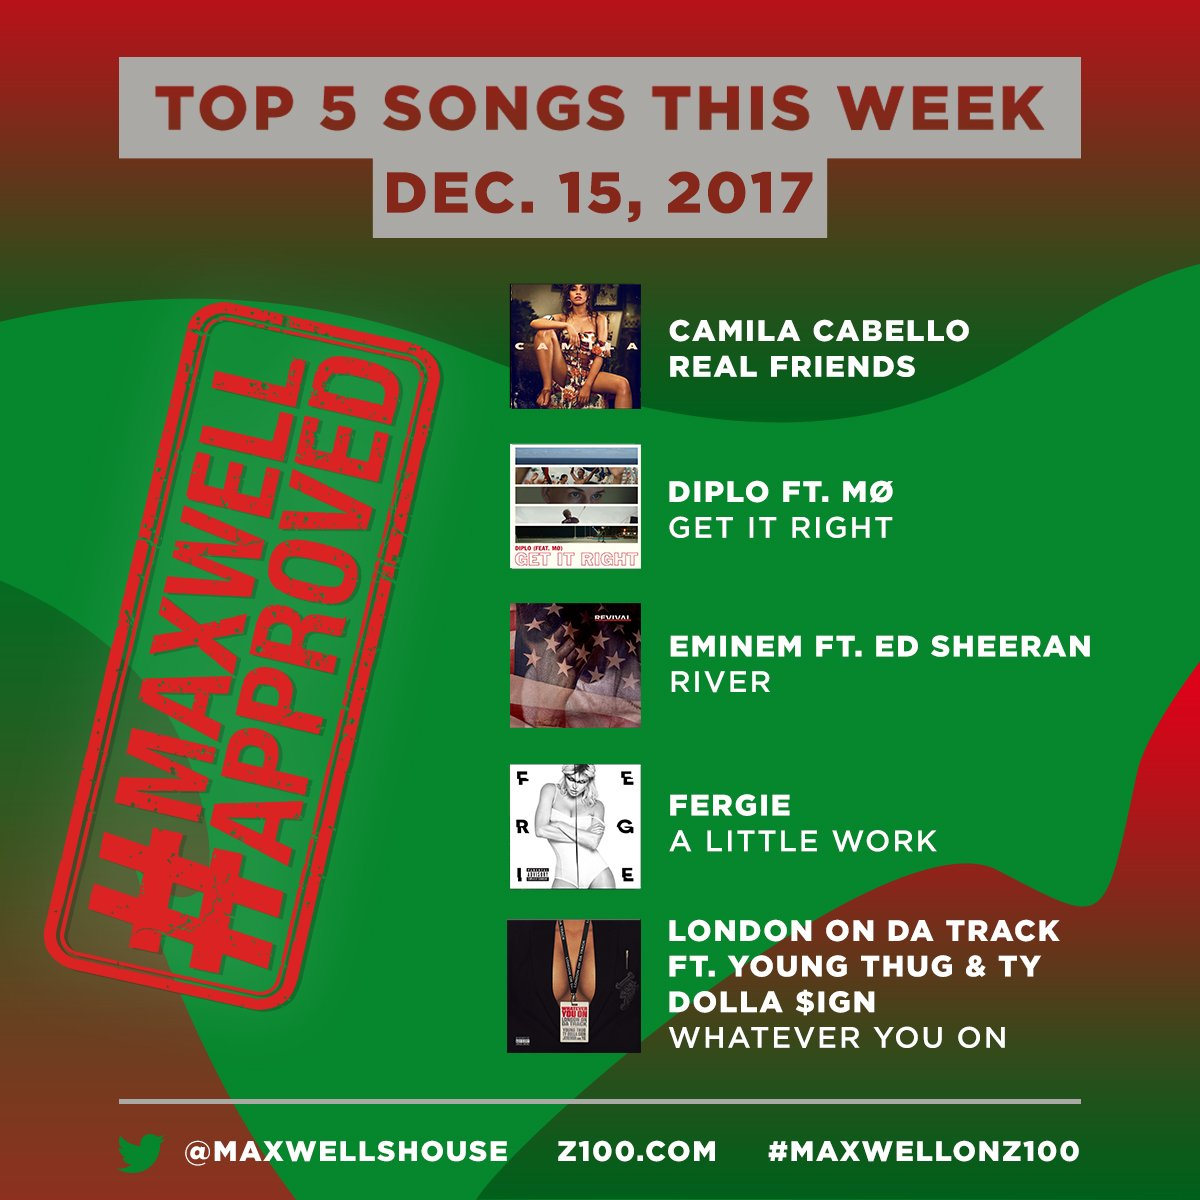 🔥BOPS🔥  Here are @MaxwellsHouse's top 5⃣ tracks for u to add to your playlist this weekend!  👏👏#MaxwellApproved  @camilacabello97 - Real Friends@diplo  +@MOMOMOYOUTH  - Get it Right@Eminem  +@edsheeran  - River@Fergie  - A Little Work@LondonOnDaTrack  - Whatever You On